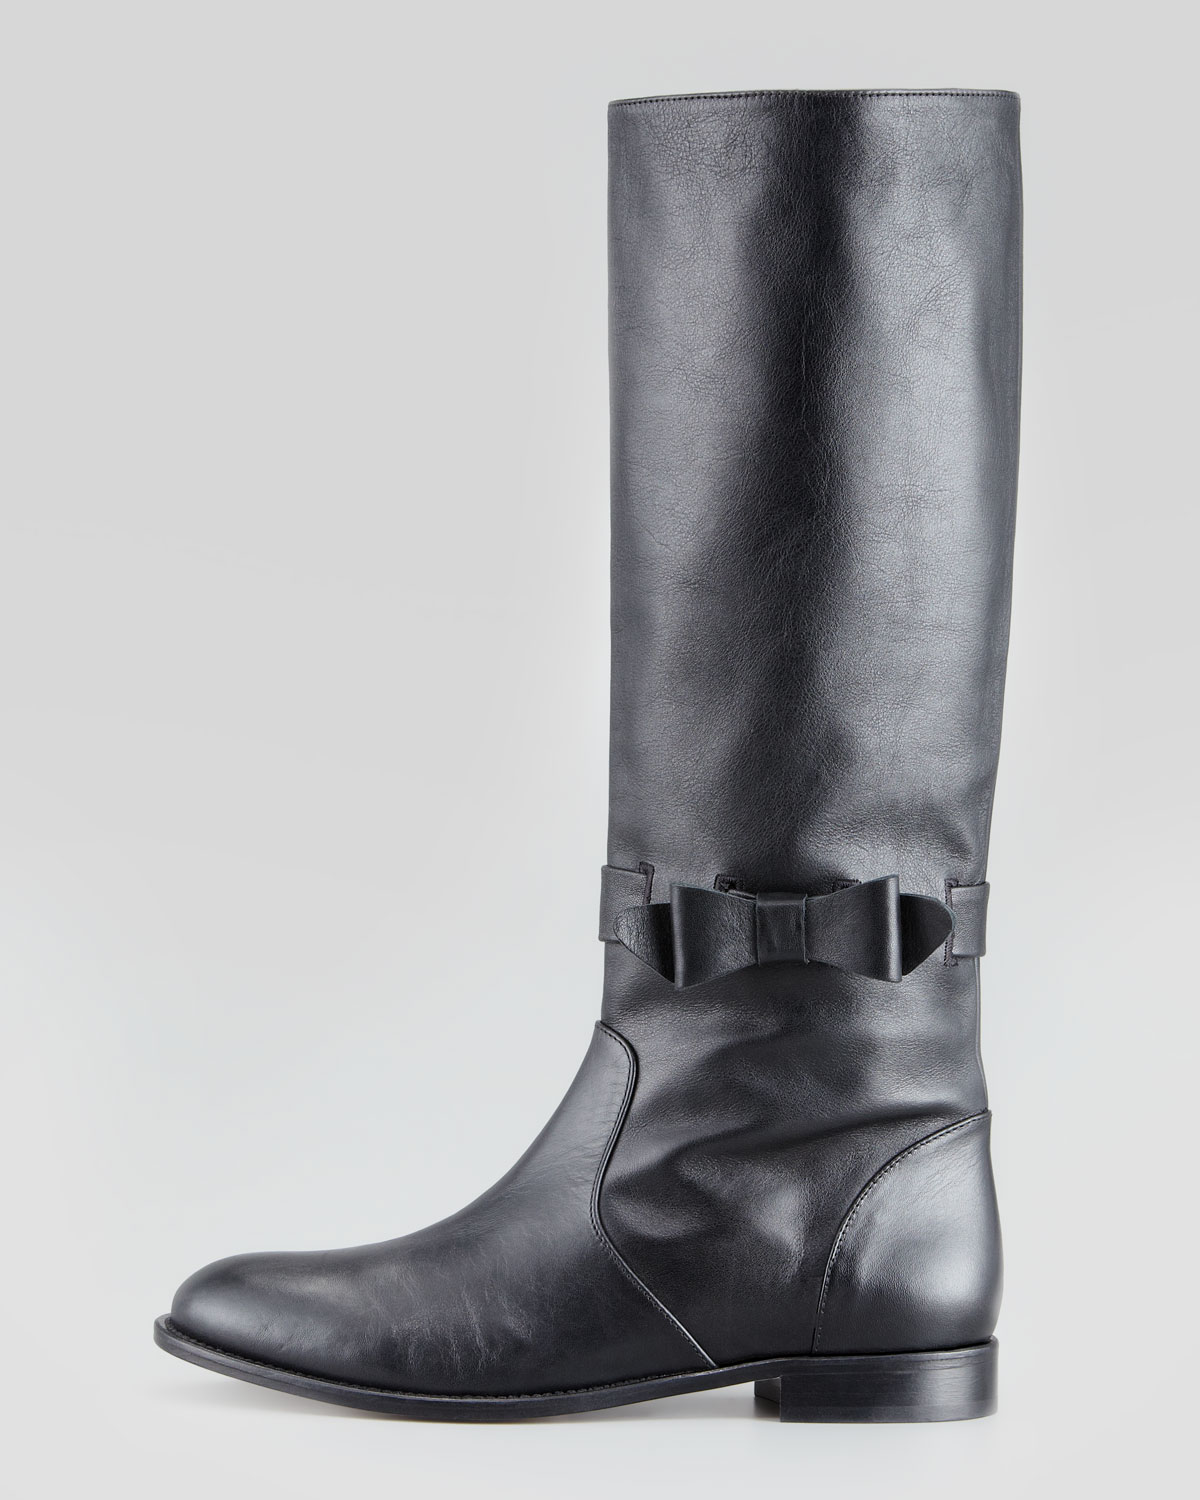 Red valentino Pullon Bow Riding Boot in Black | Lyst